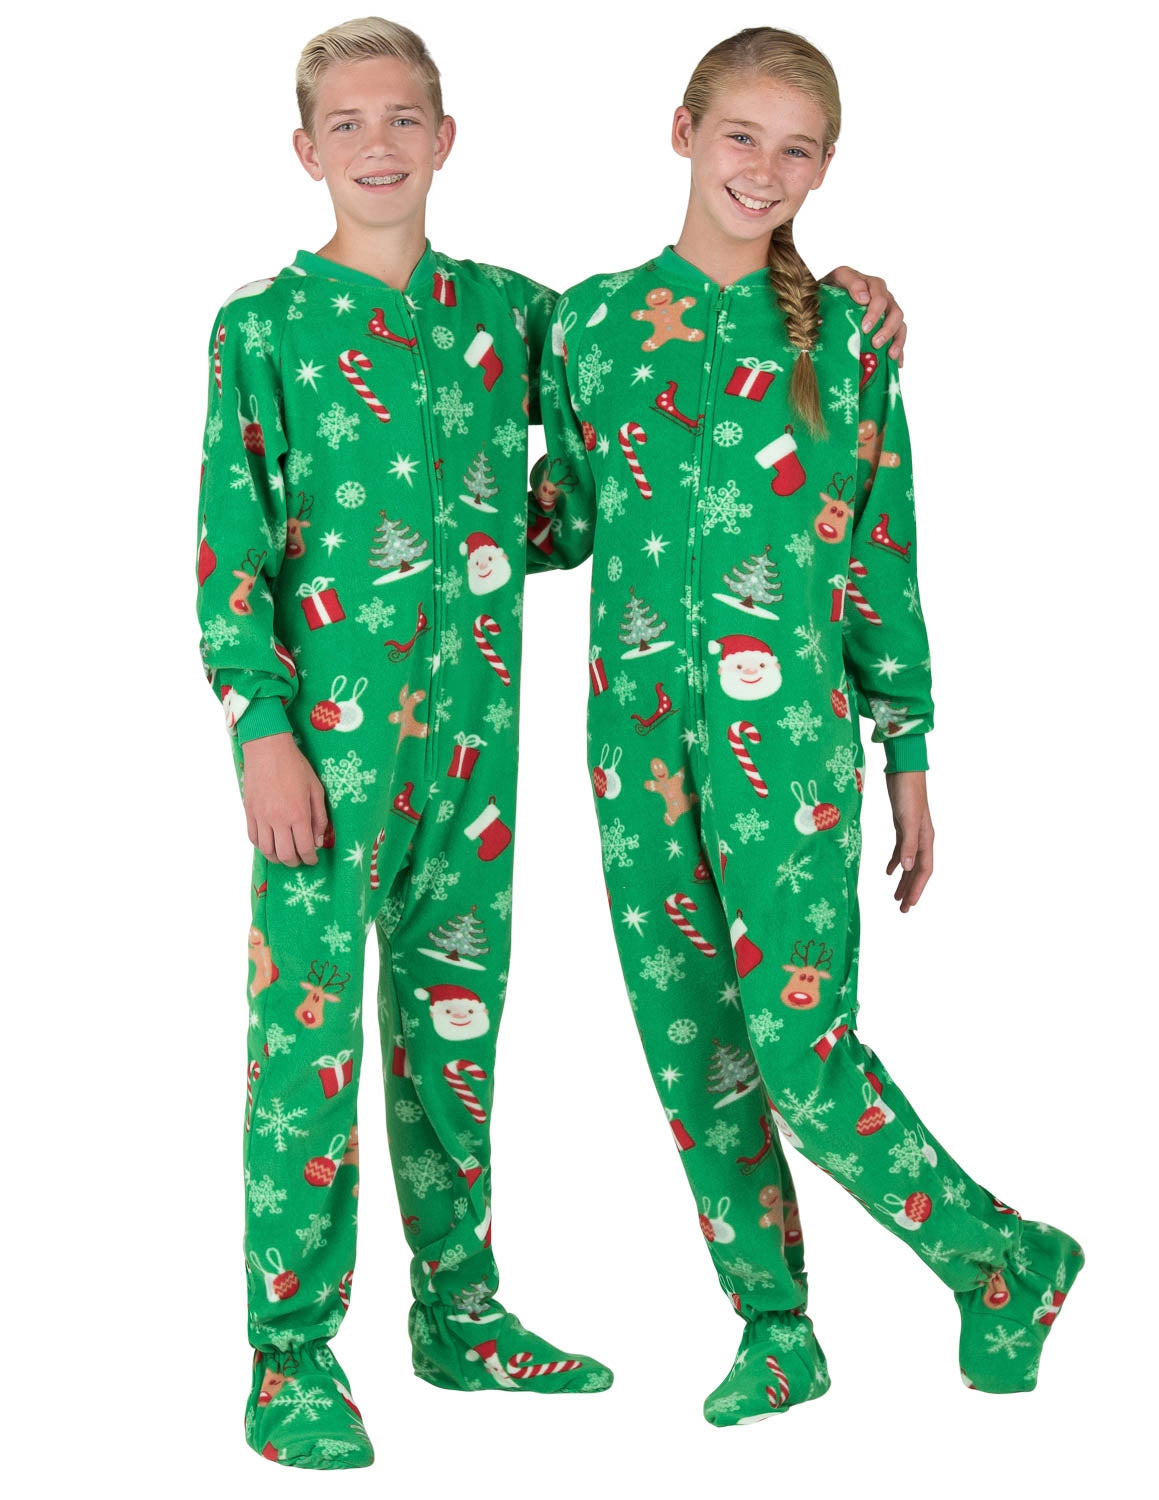 Tis The Season Kids Fleece Onesie